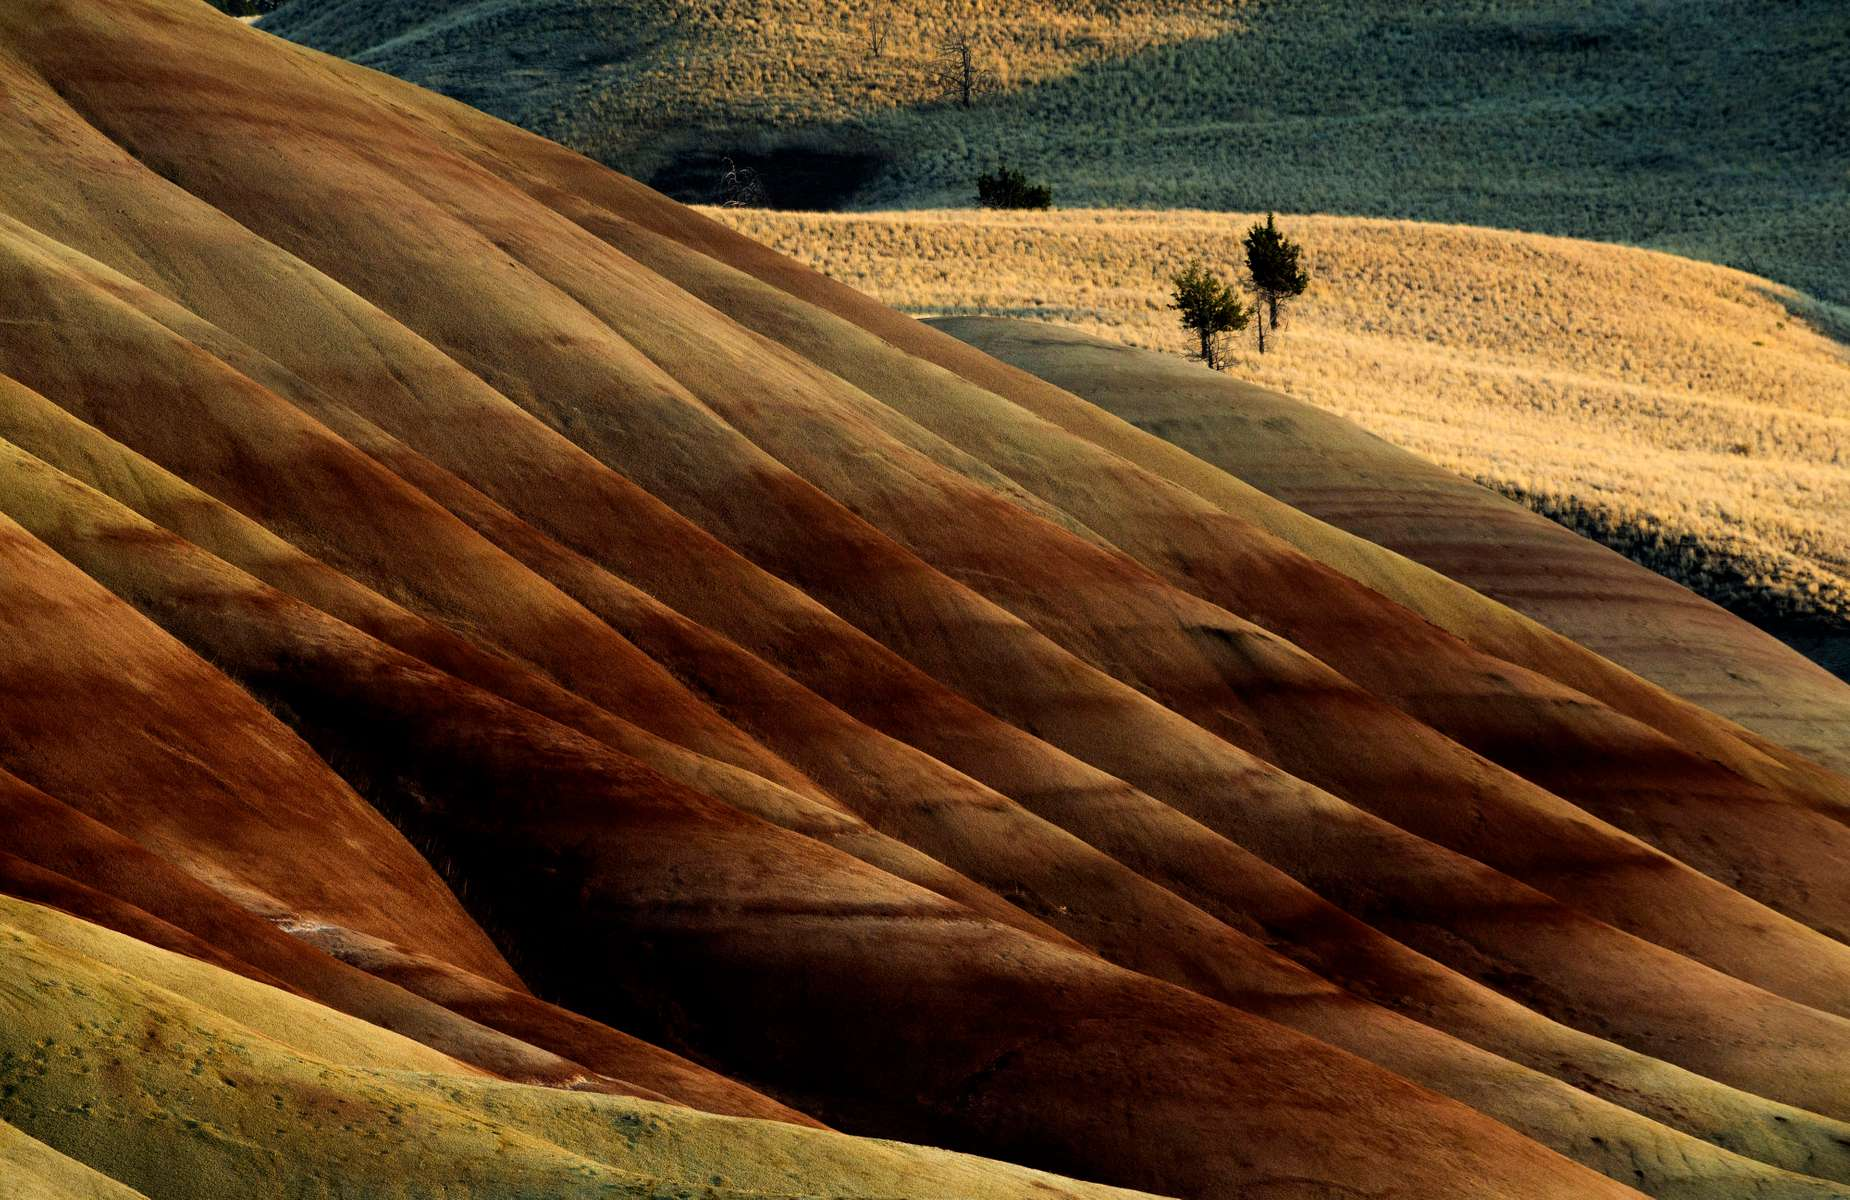 The late evening sun casts light and shadow on the Painted Hills in the John Day Fossi Beds National Monument Sept. 4, 2020, near Mitchell, Oregon. The Painted Hills are a top attraction in Wheeler County after being named one of Travel Oregon's Seven Wonders of the state.